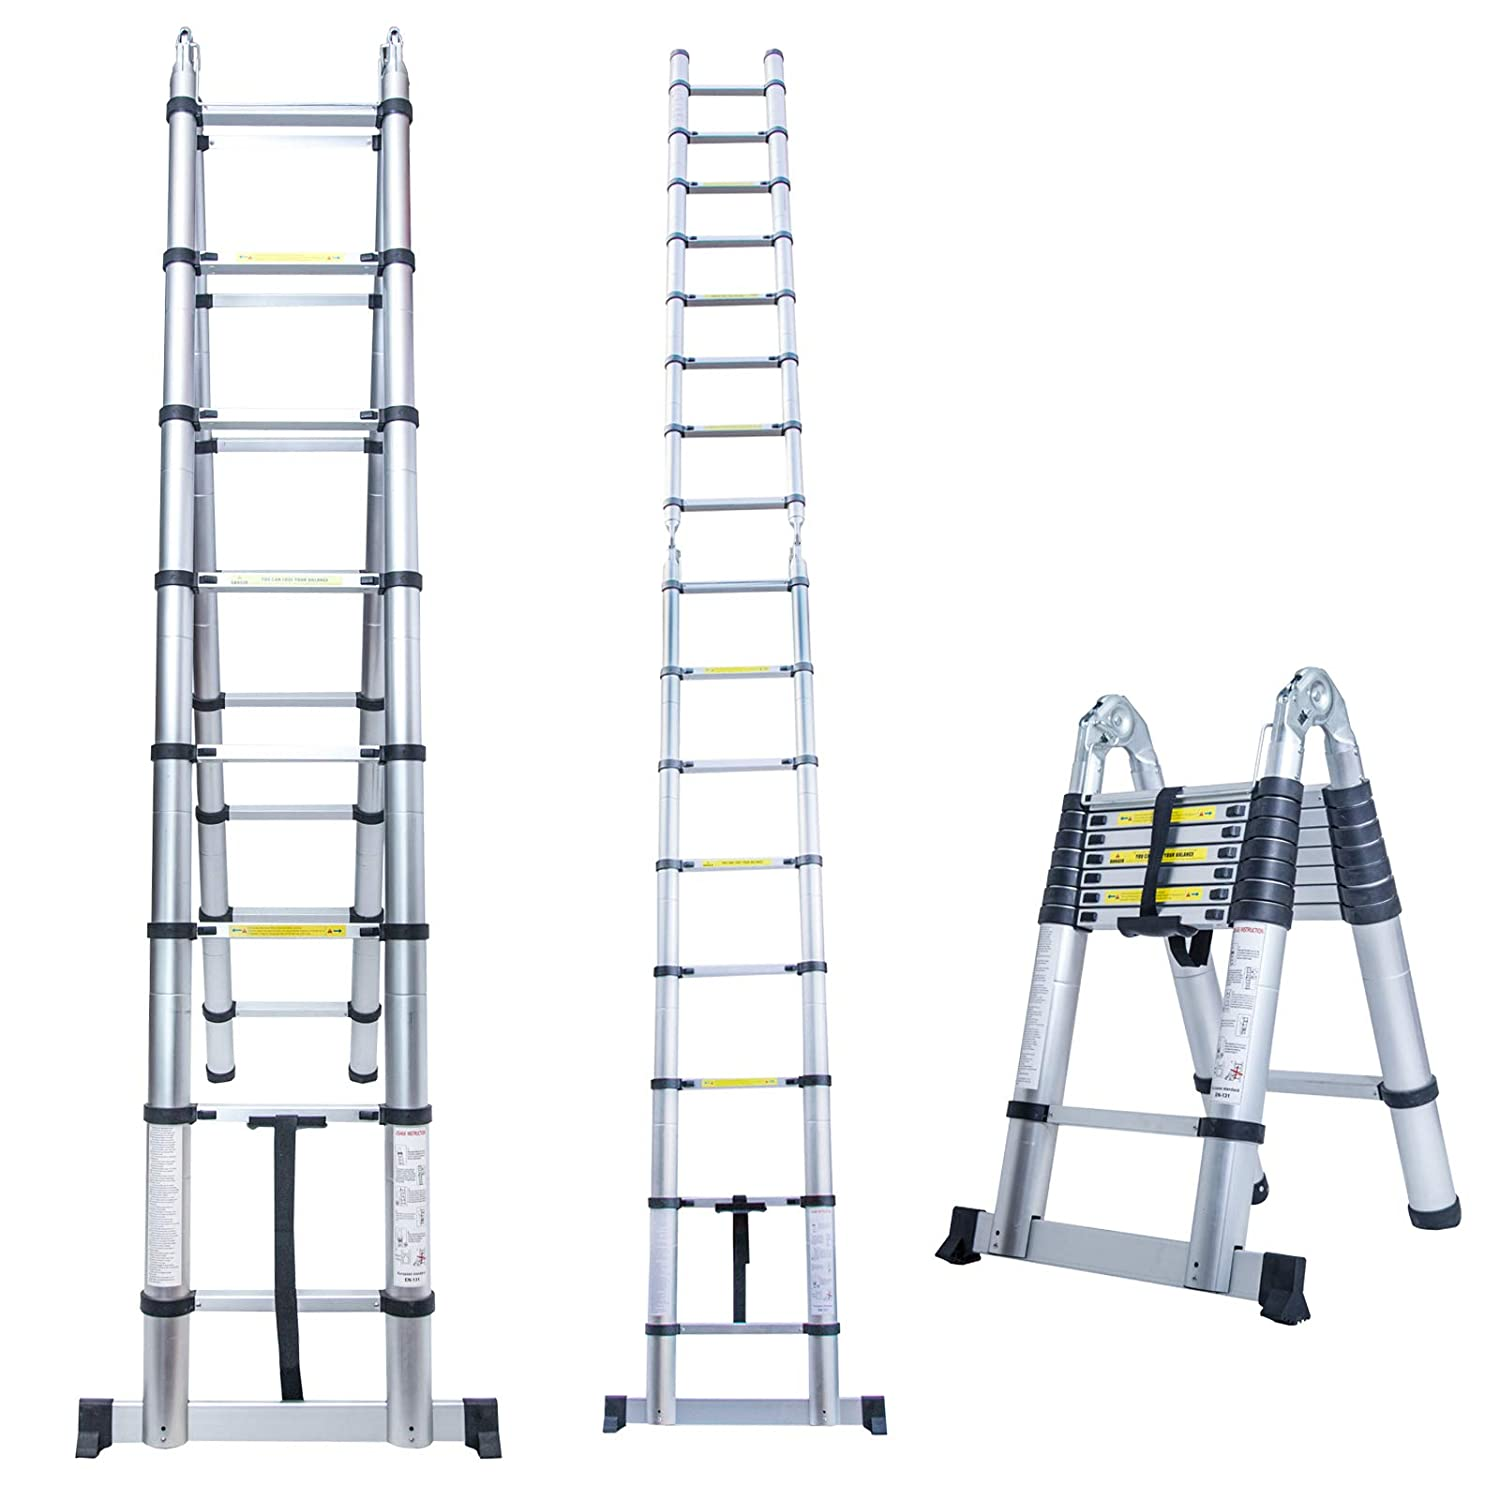 Vosson Aluminum Telescopic Extension Ladder EN131 Certified 16.5 Ft Versatile Telescoping Extendable Ladder with Spring Loaded Locking Mechanism/&Non-Slip 330 Lbs Capacity